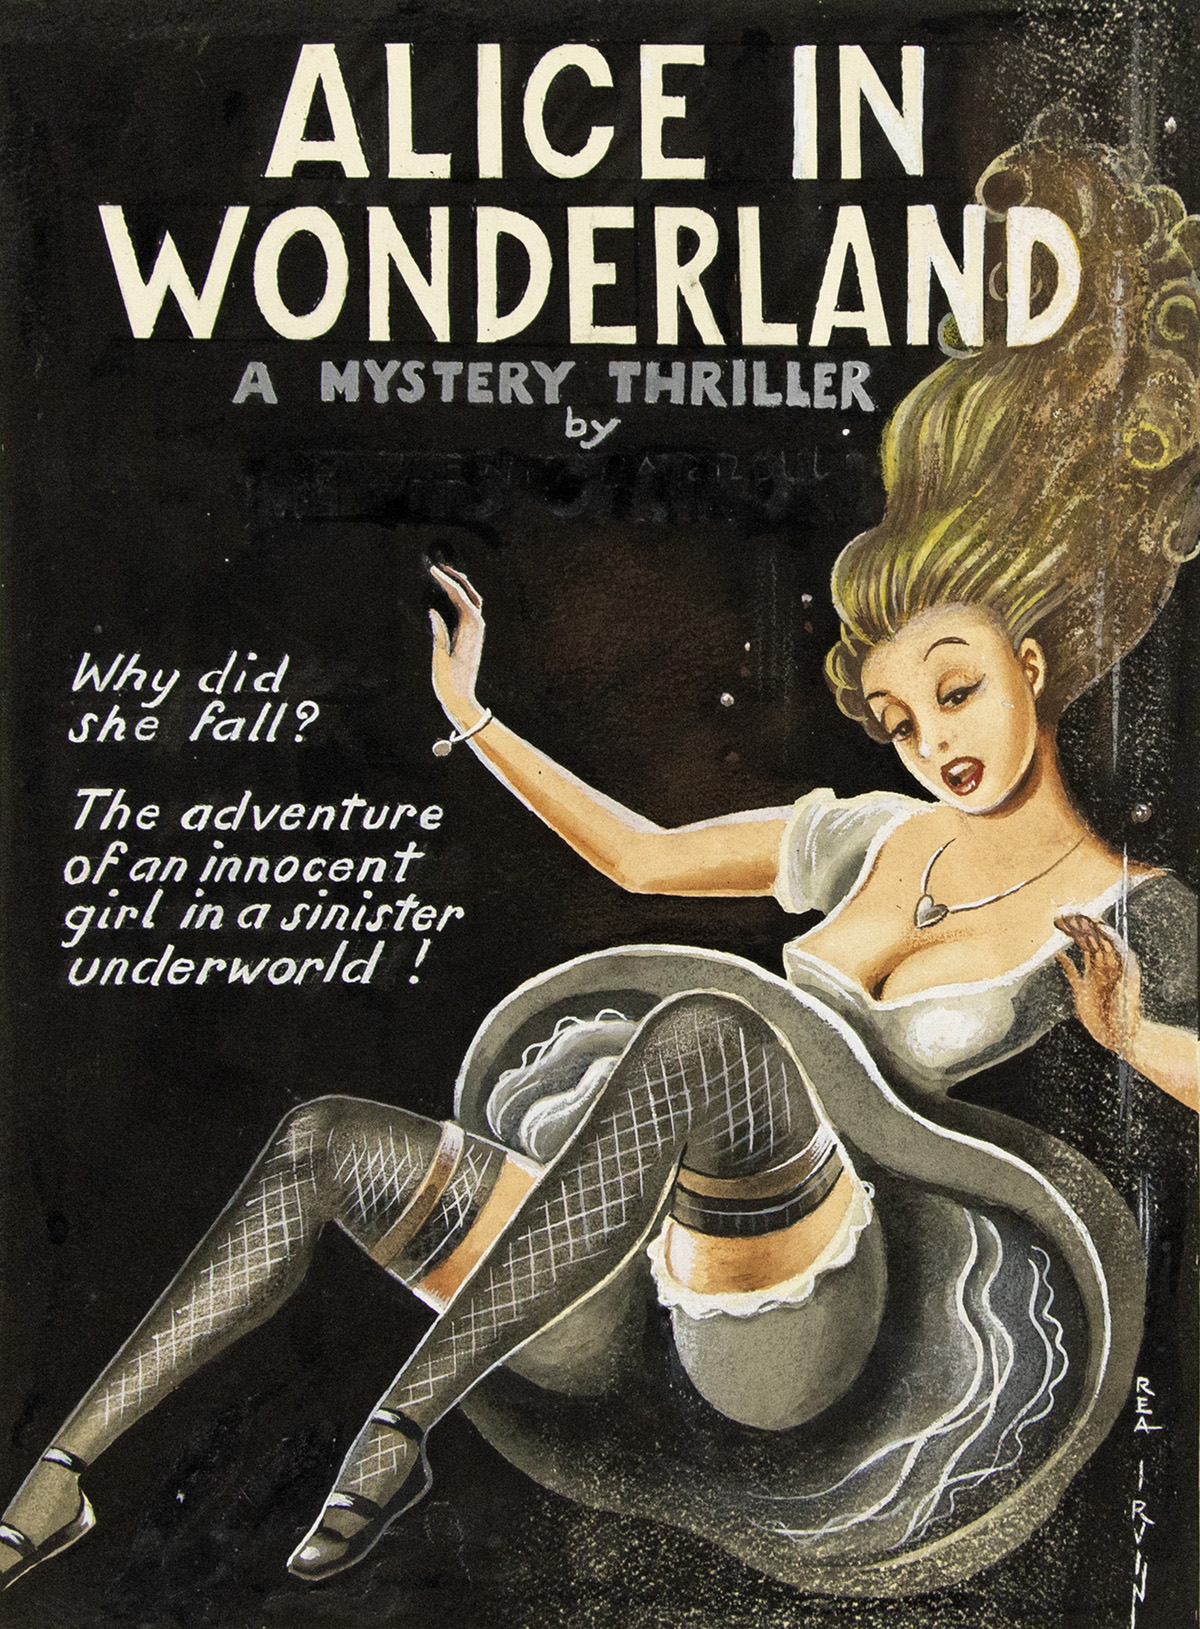 REA-IRVIN-Alice-in-Wonderland-A-Mystery-Thriller-by-Lewis-Ca